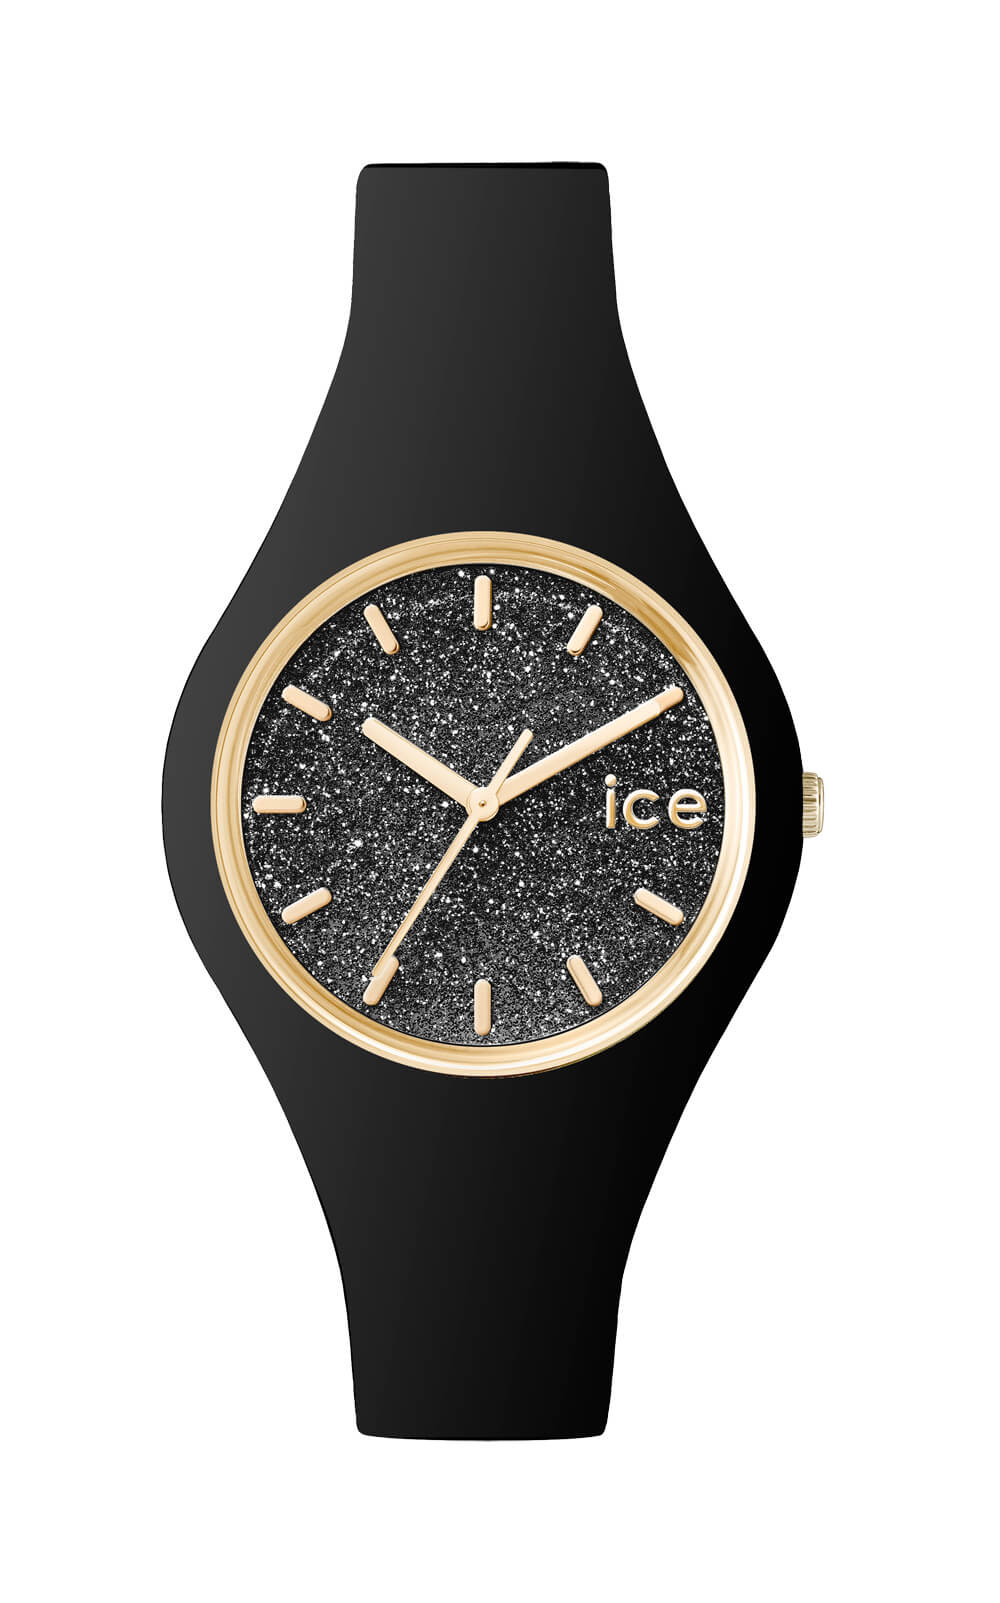 Passend zum Winter - ICE-Watch glitter Kollektion